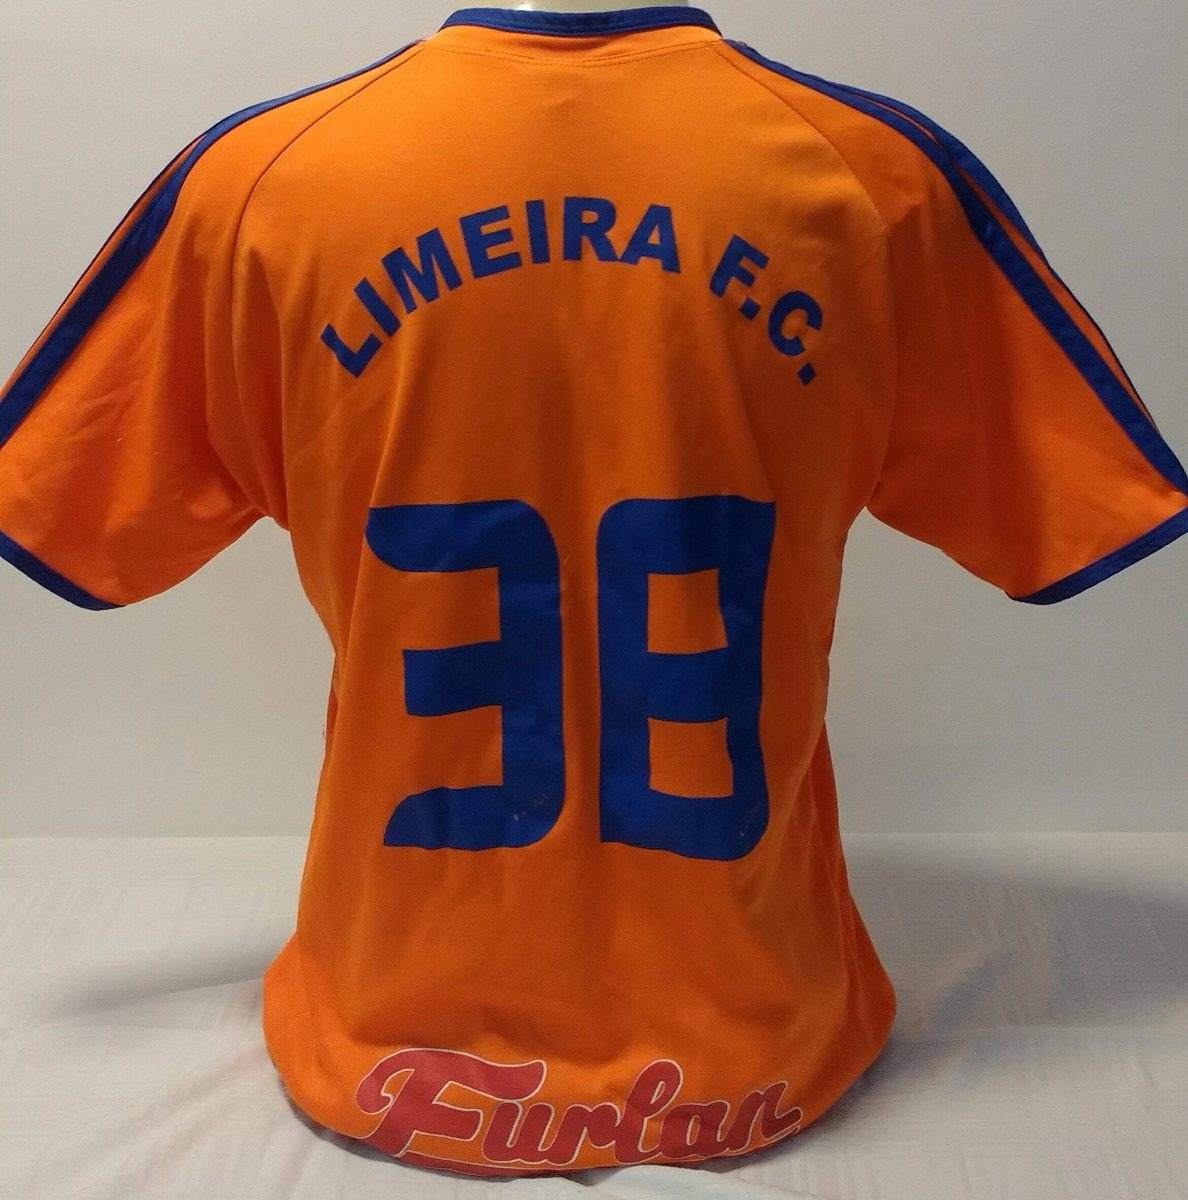 Camisa Time Limeira Futebol Clube Limeira F.c - R  79 7ce4442bb6bed